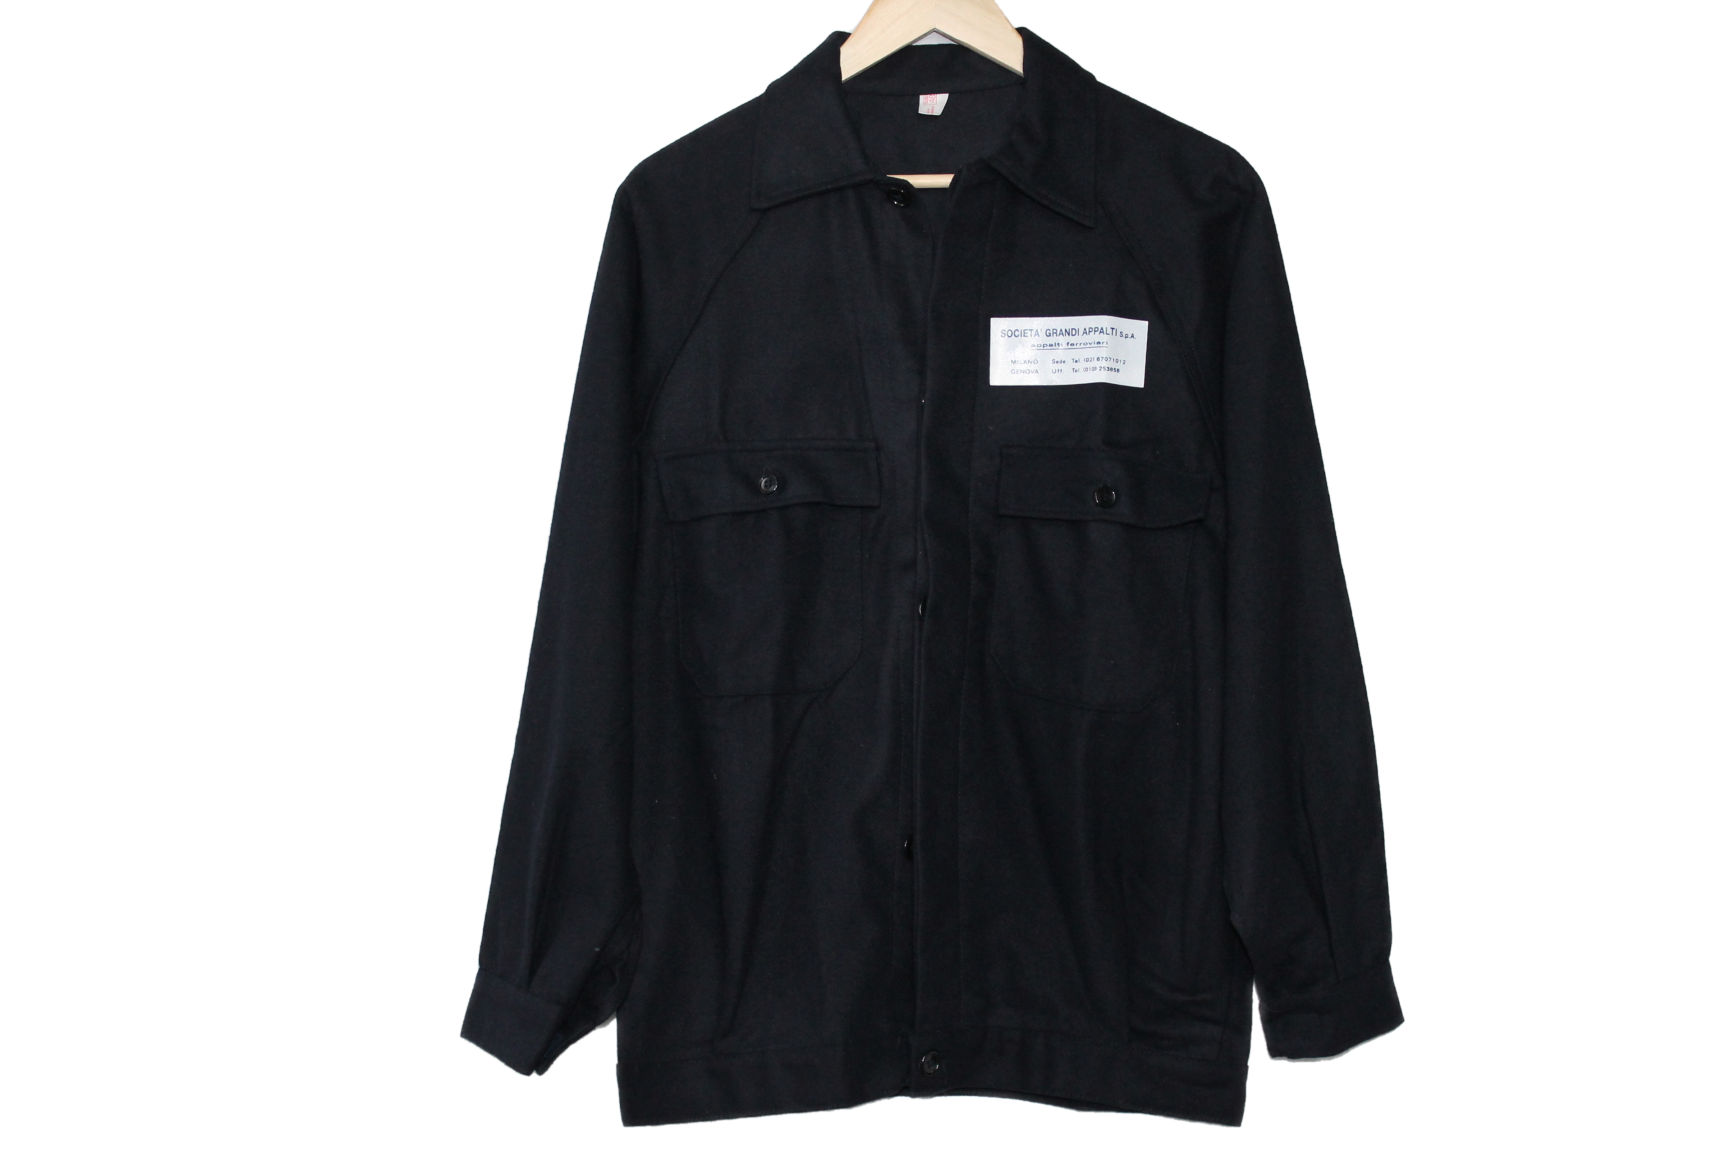 Working shirt size M